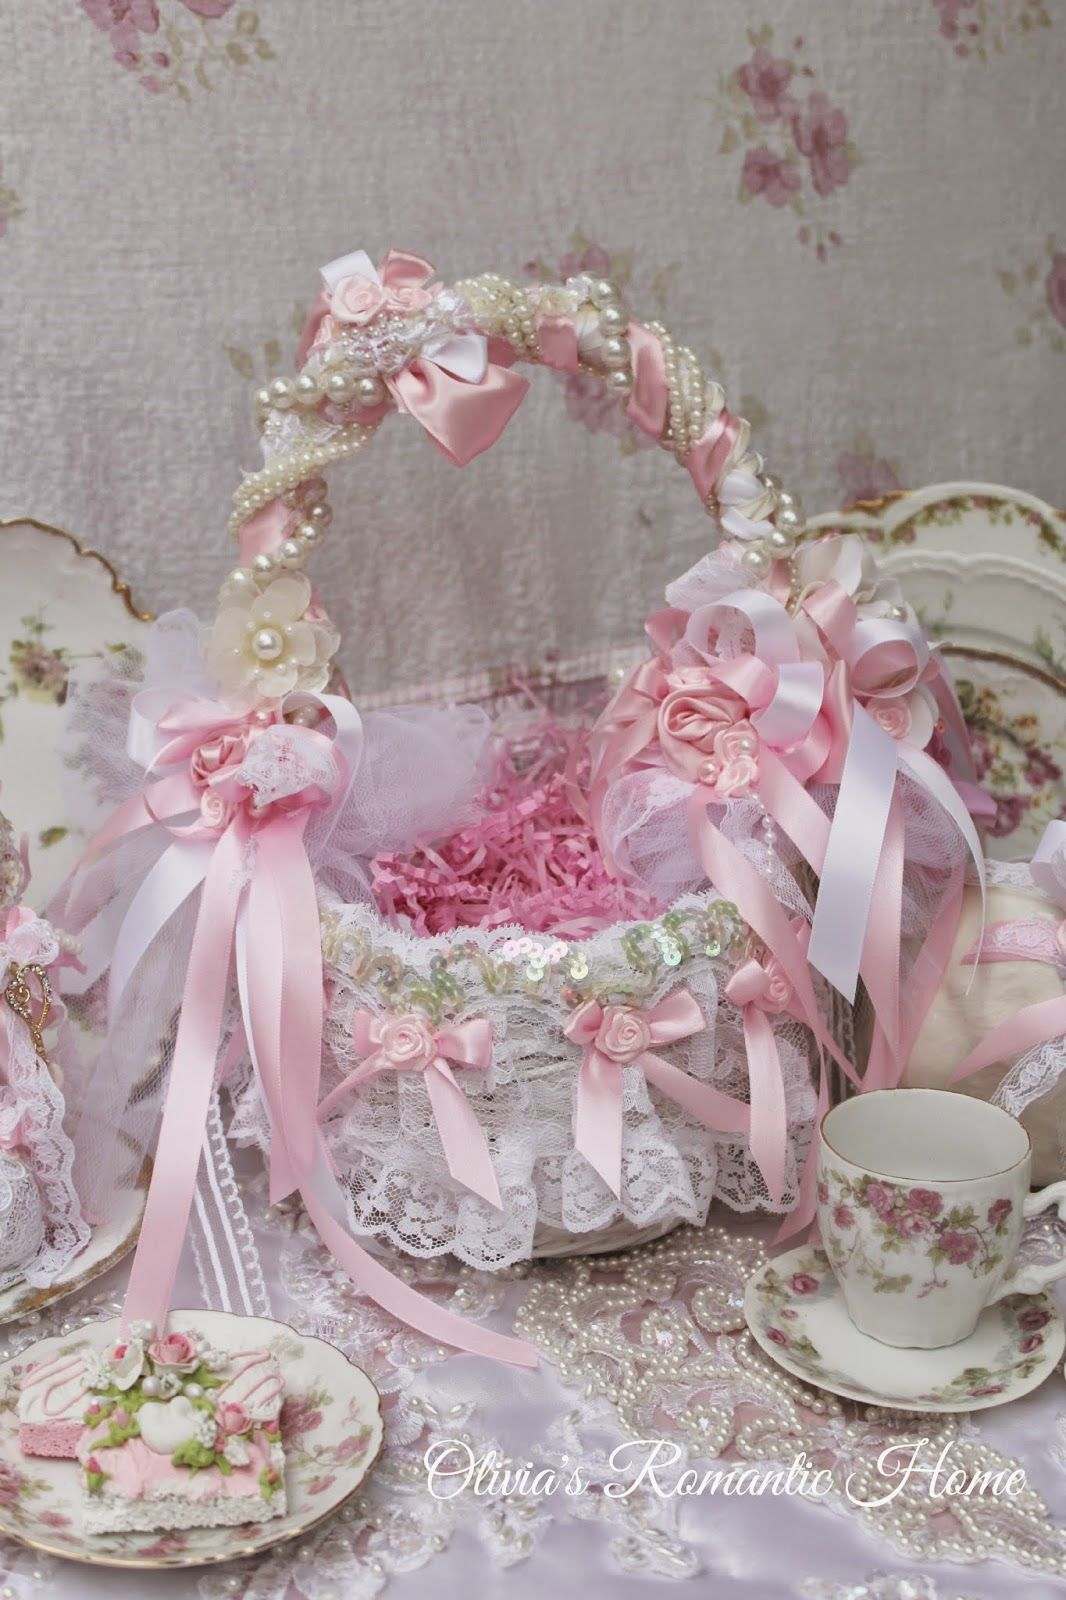 Pink Shabby Chic Dresser: Olivia's Romantic Home: Glam Easter Baskets